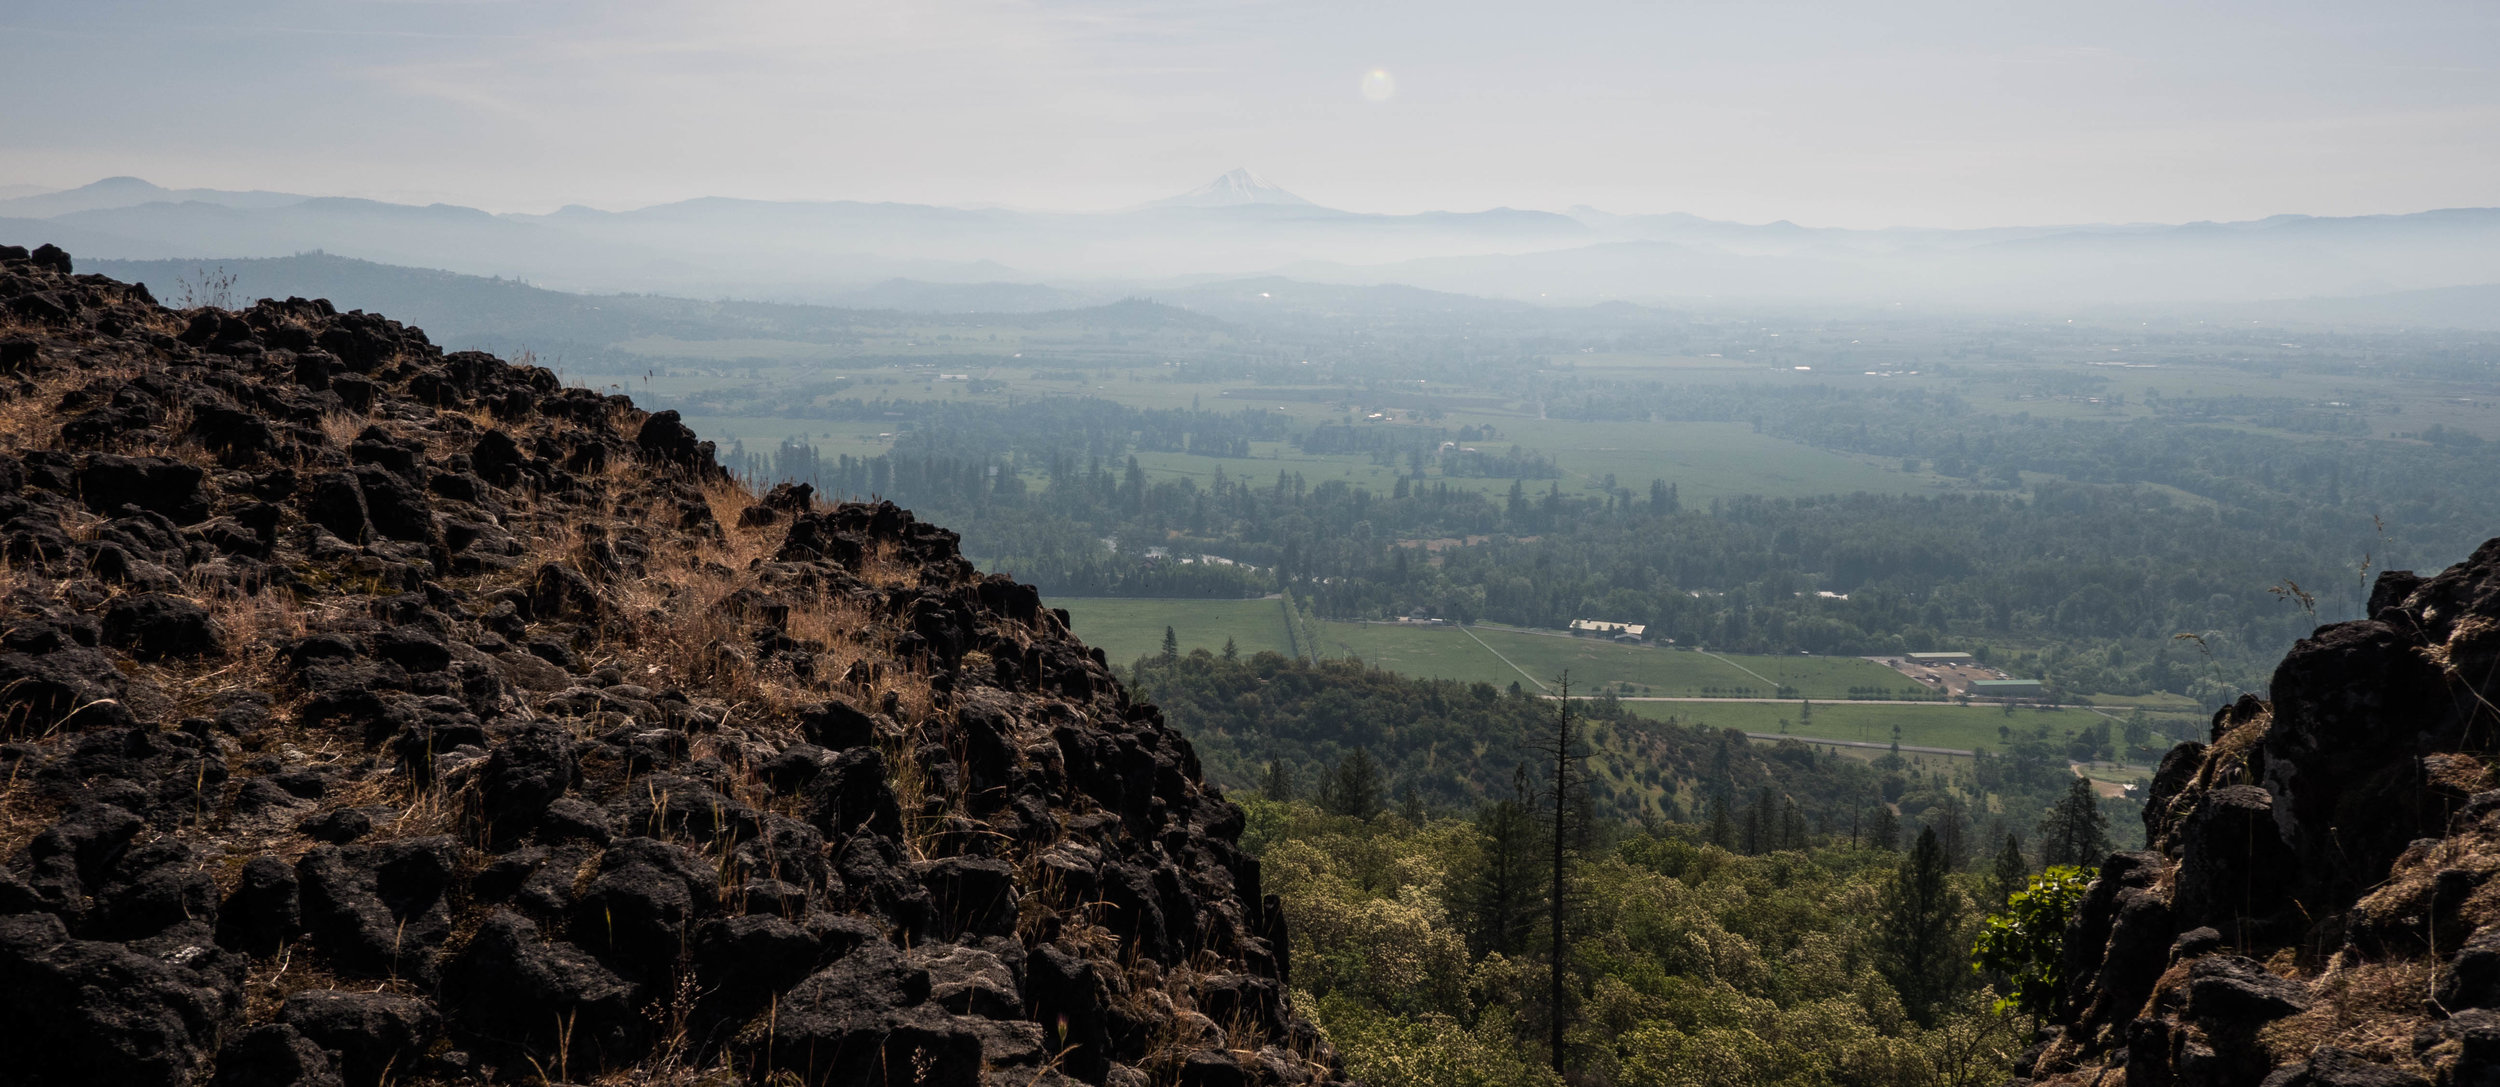 Remnants of lava rock on top of the mesa. The communities of the Rogue Valley below.